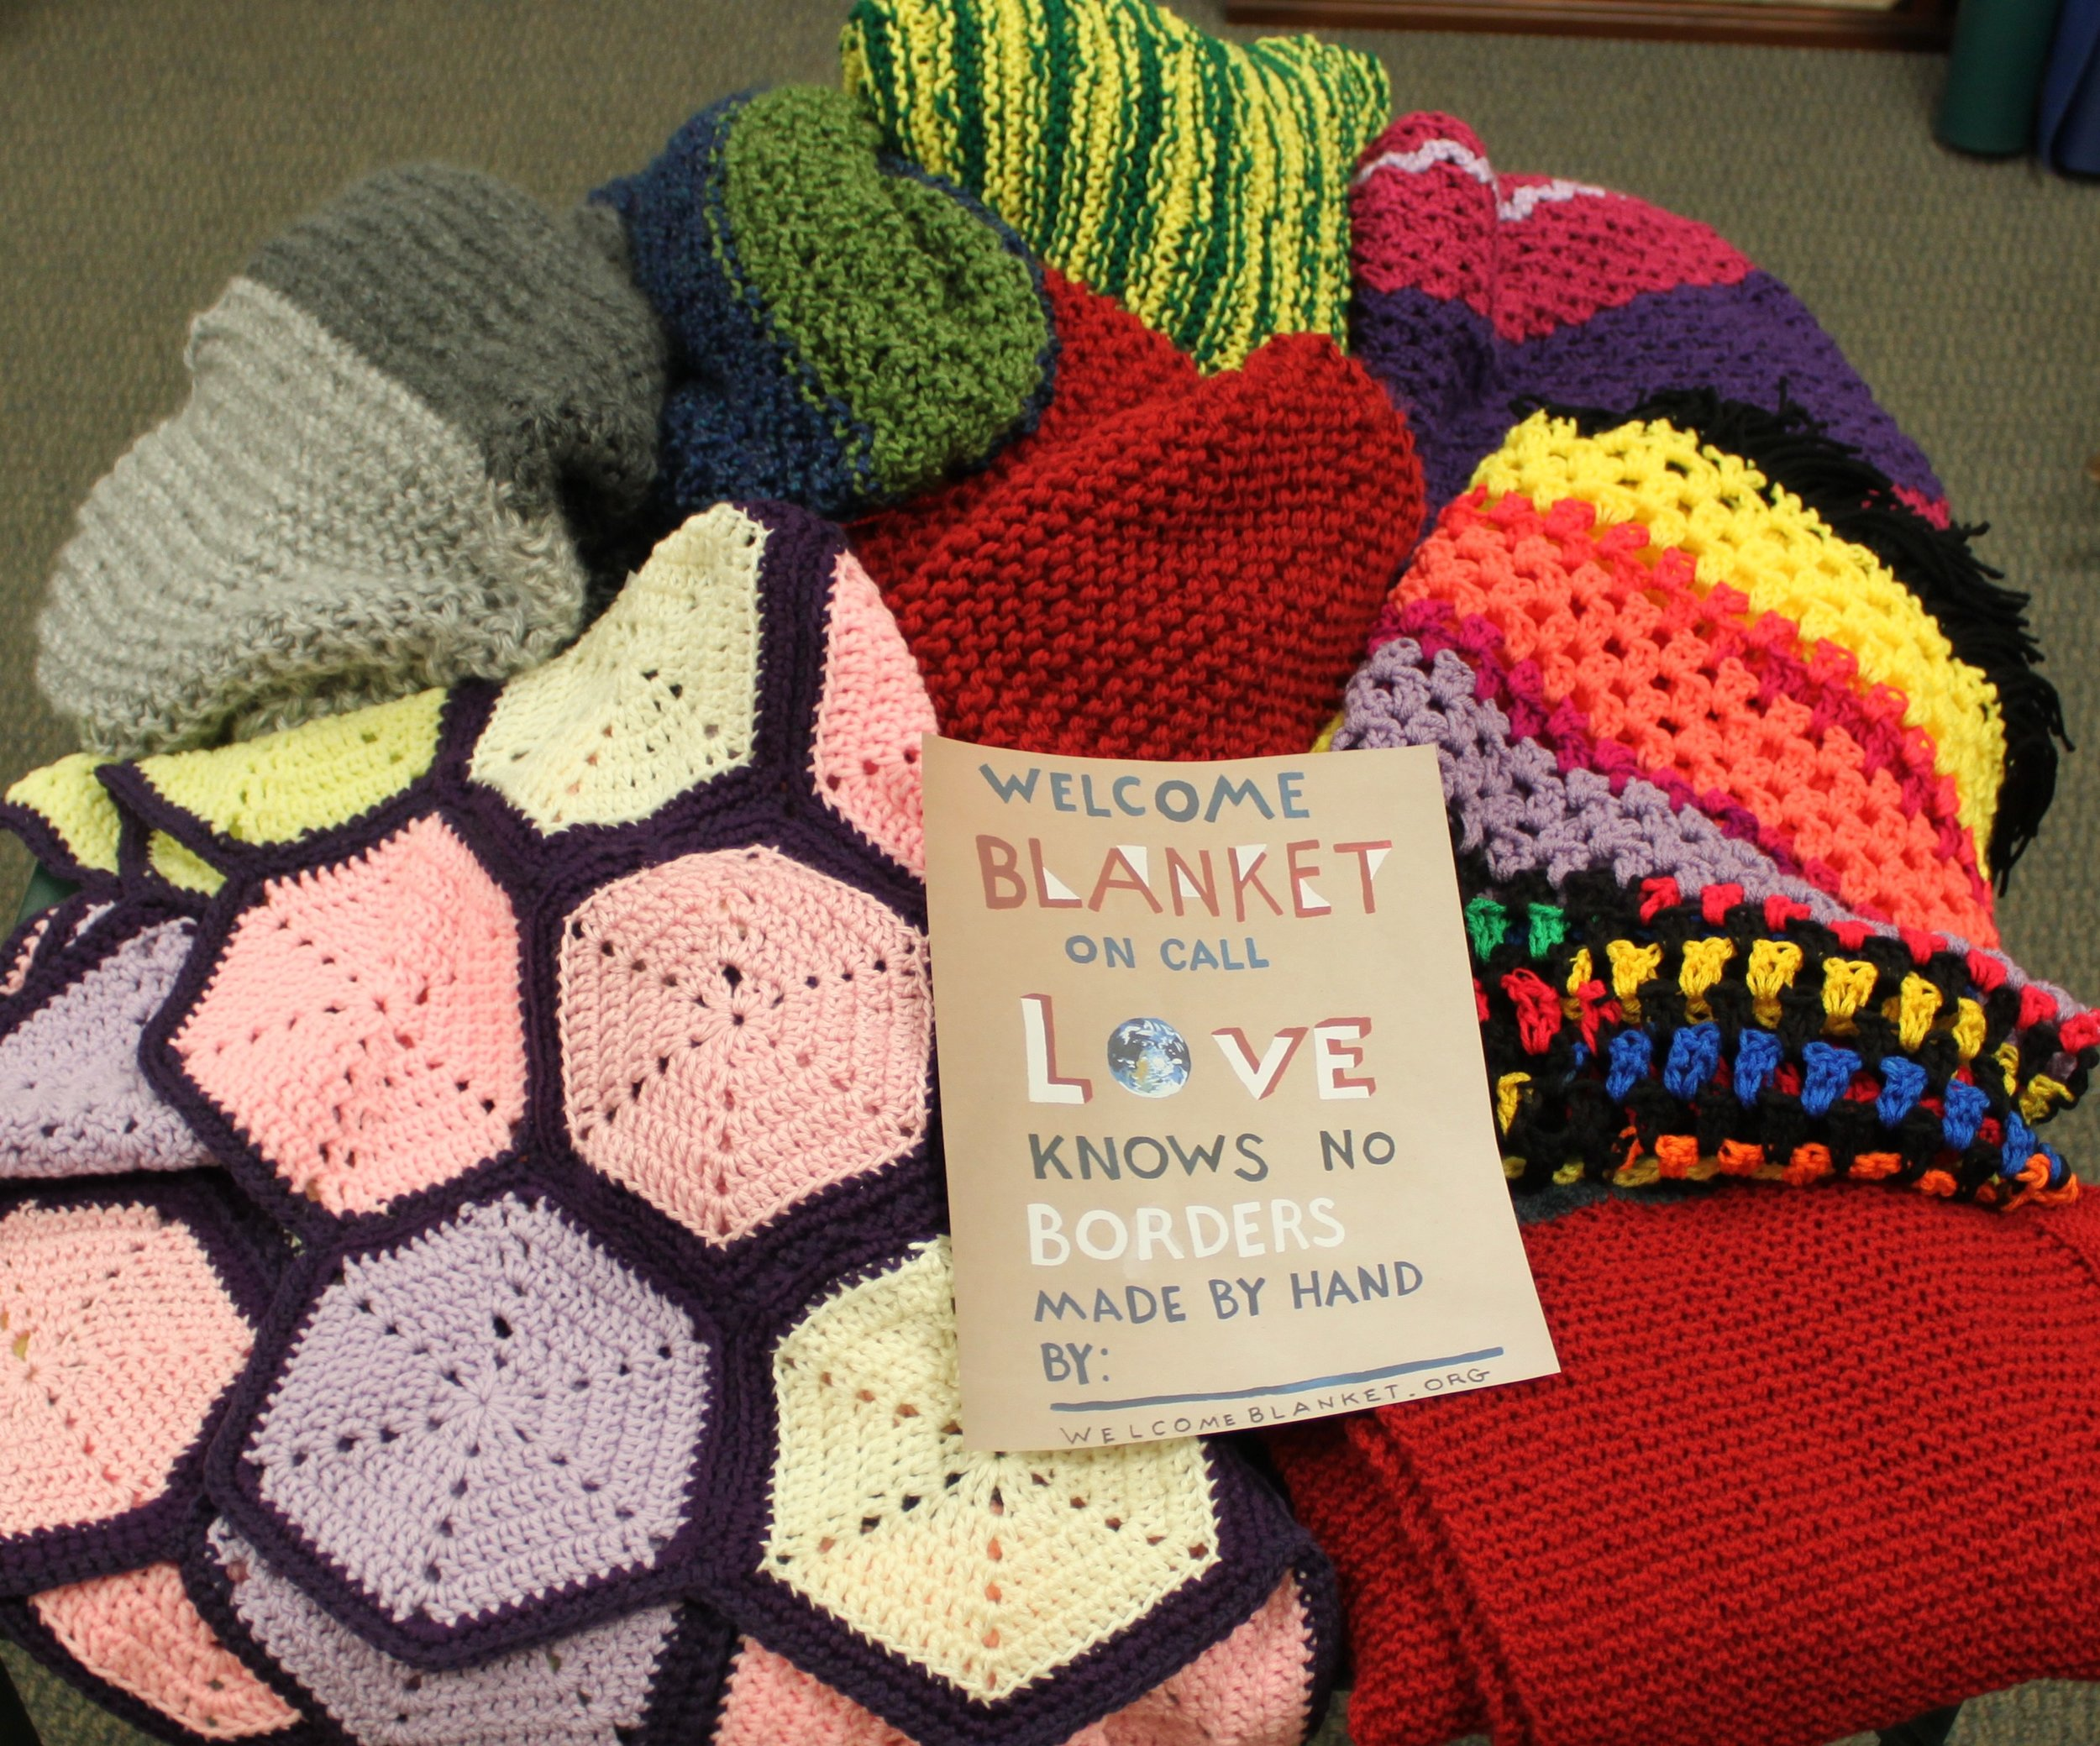 Gallery — Welcome Blanket